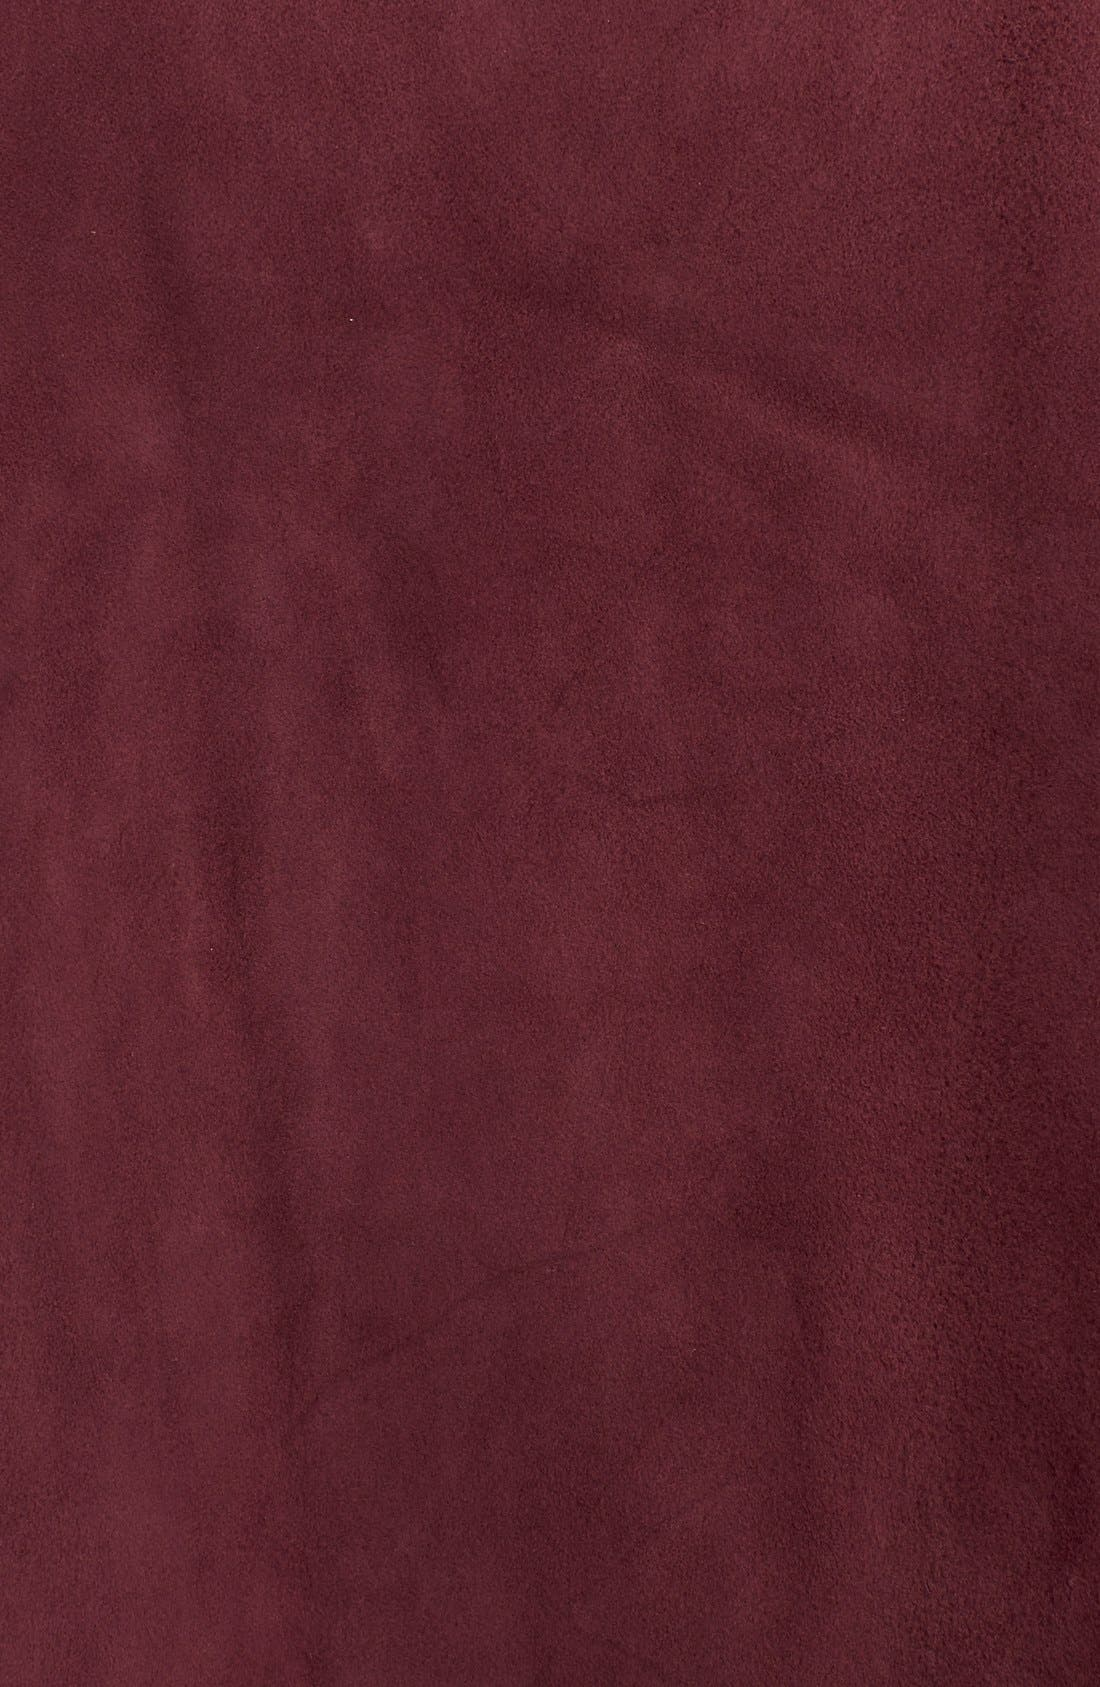 belted suede a-line skirt,                             Alternate thumbnail 5, color,                             Midnight Wine